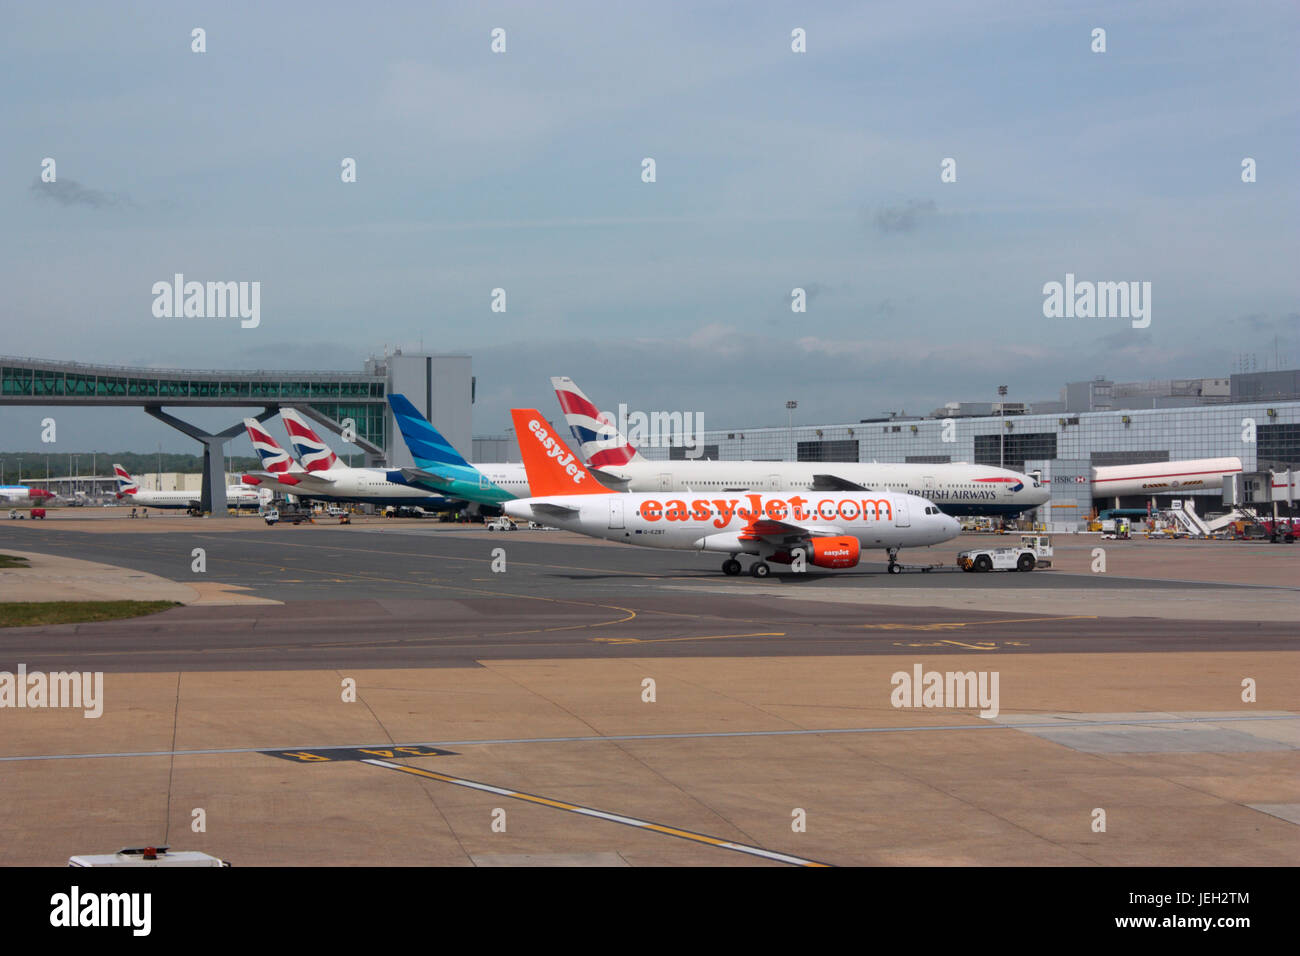 Civil aviation. London Gatwick Airport, UK, with planes at their gates and an easyJet Airbus A319 in the foreground - Stock Image